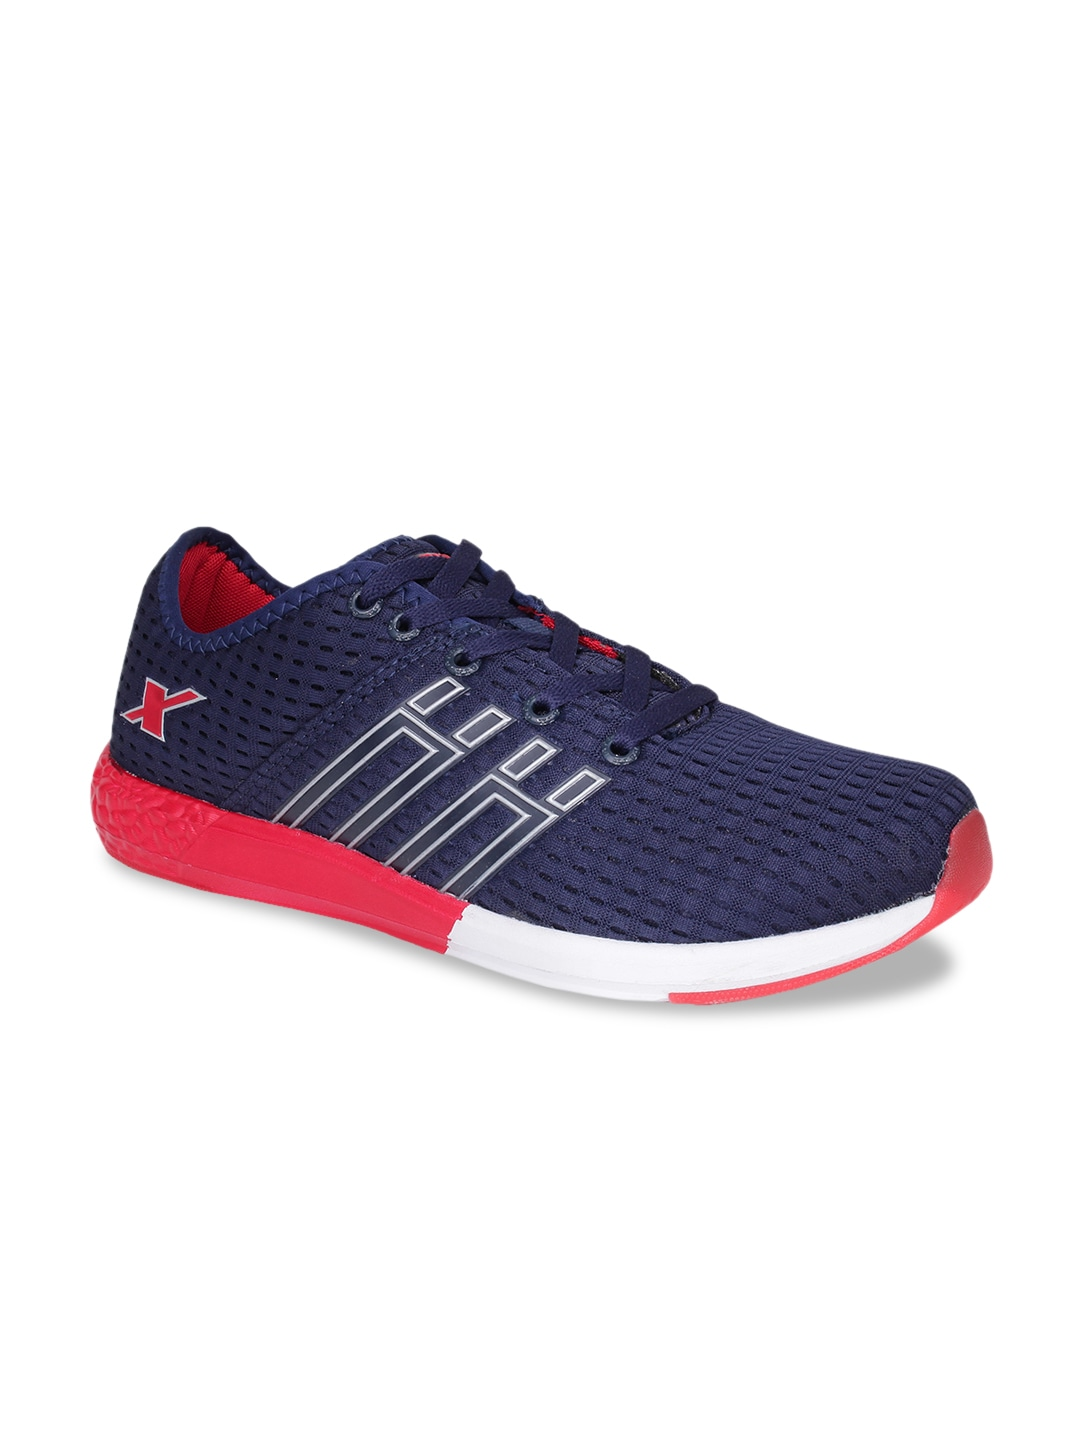 Navy Blue & Red Mesh SM-425 Running Shoes